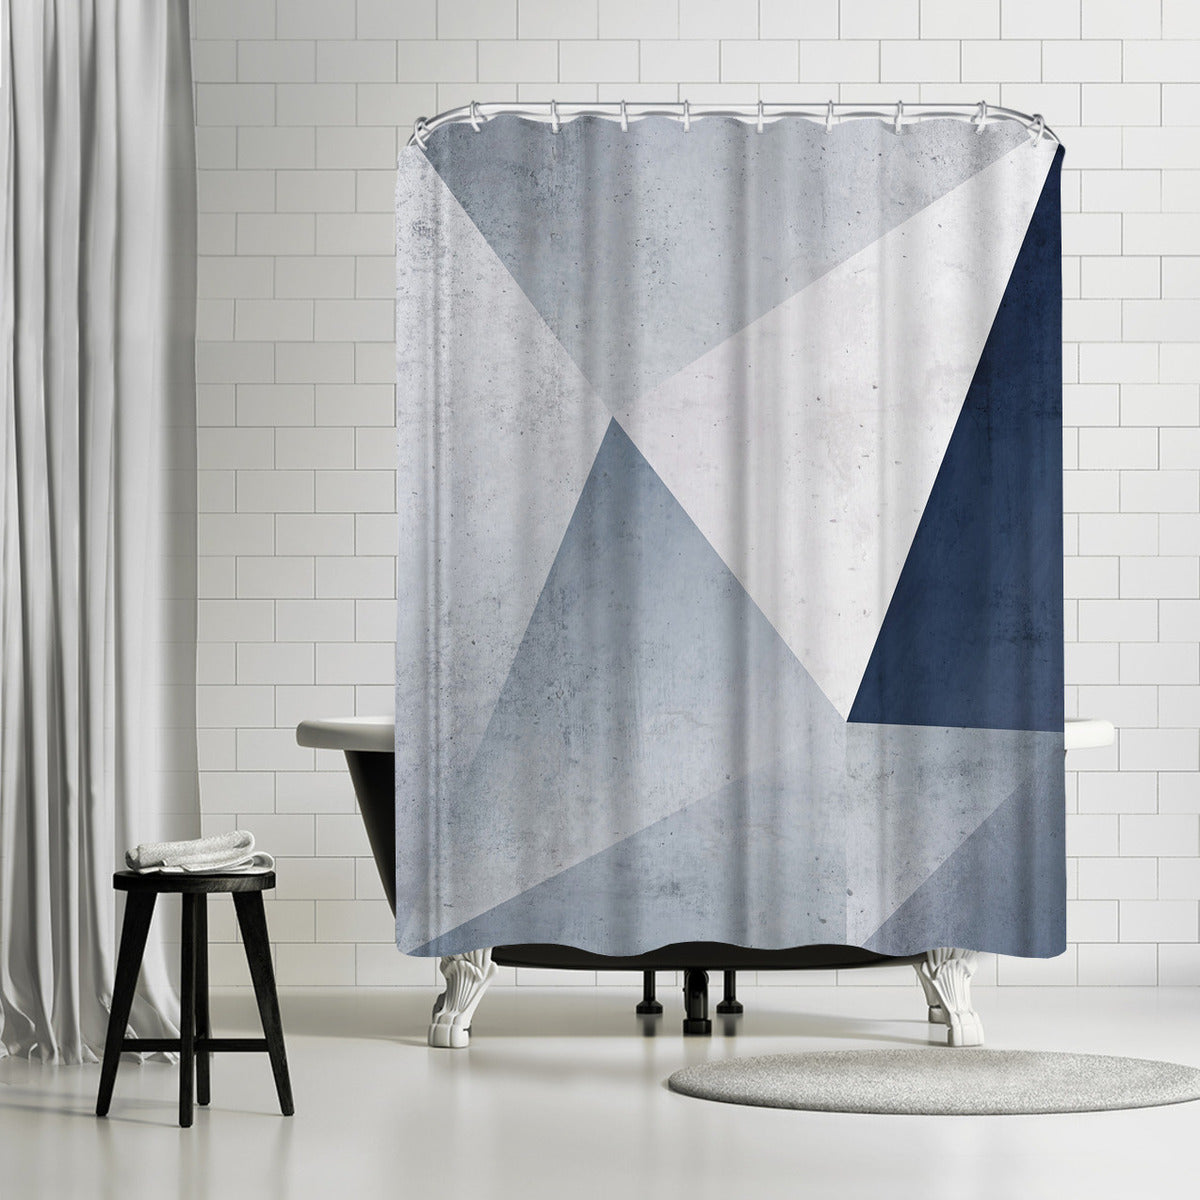 Iced Geometry by Emanuela Carratoni Shower Curtain -  - Americanflat